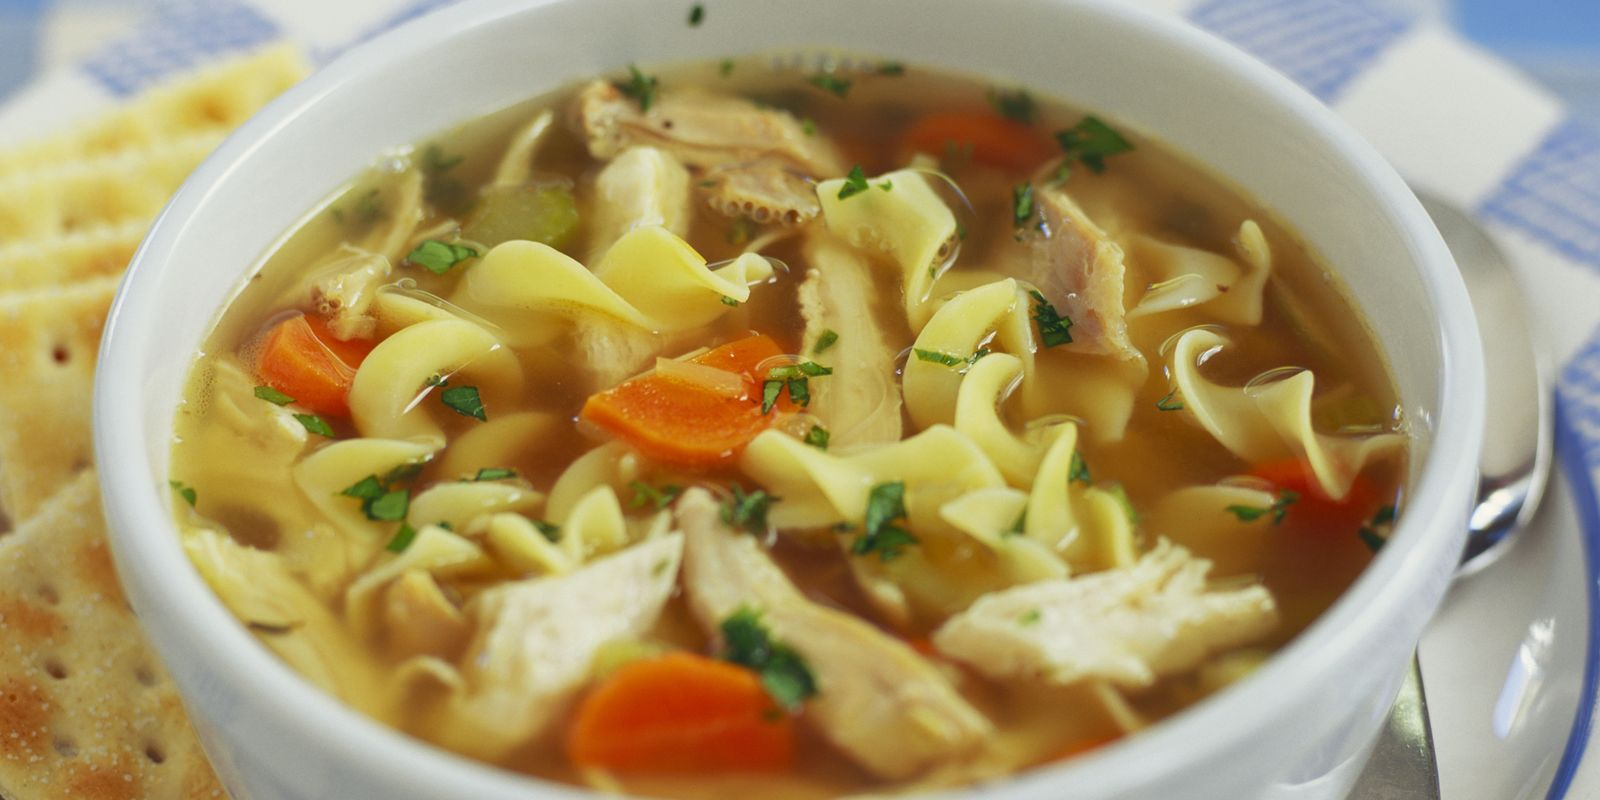 Homemade Chicken Noodle Soup Recipe - How to Make Chicken Noodle Soup